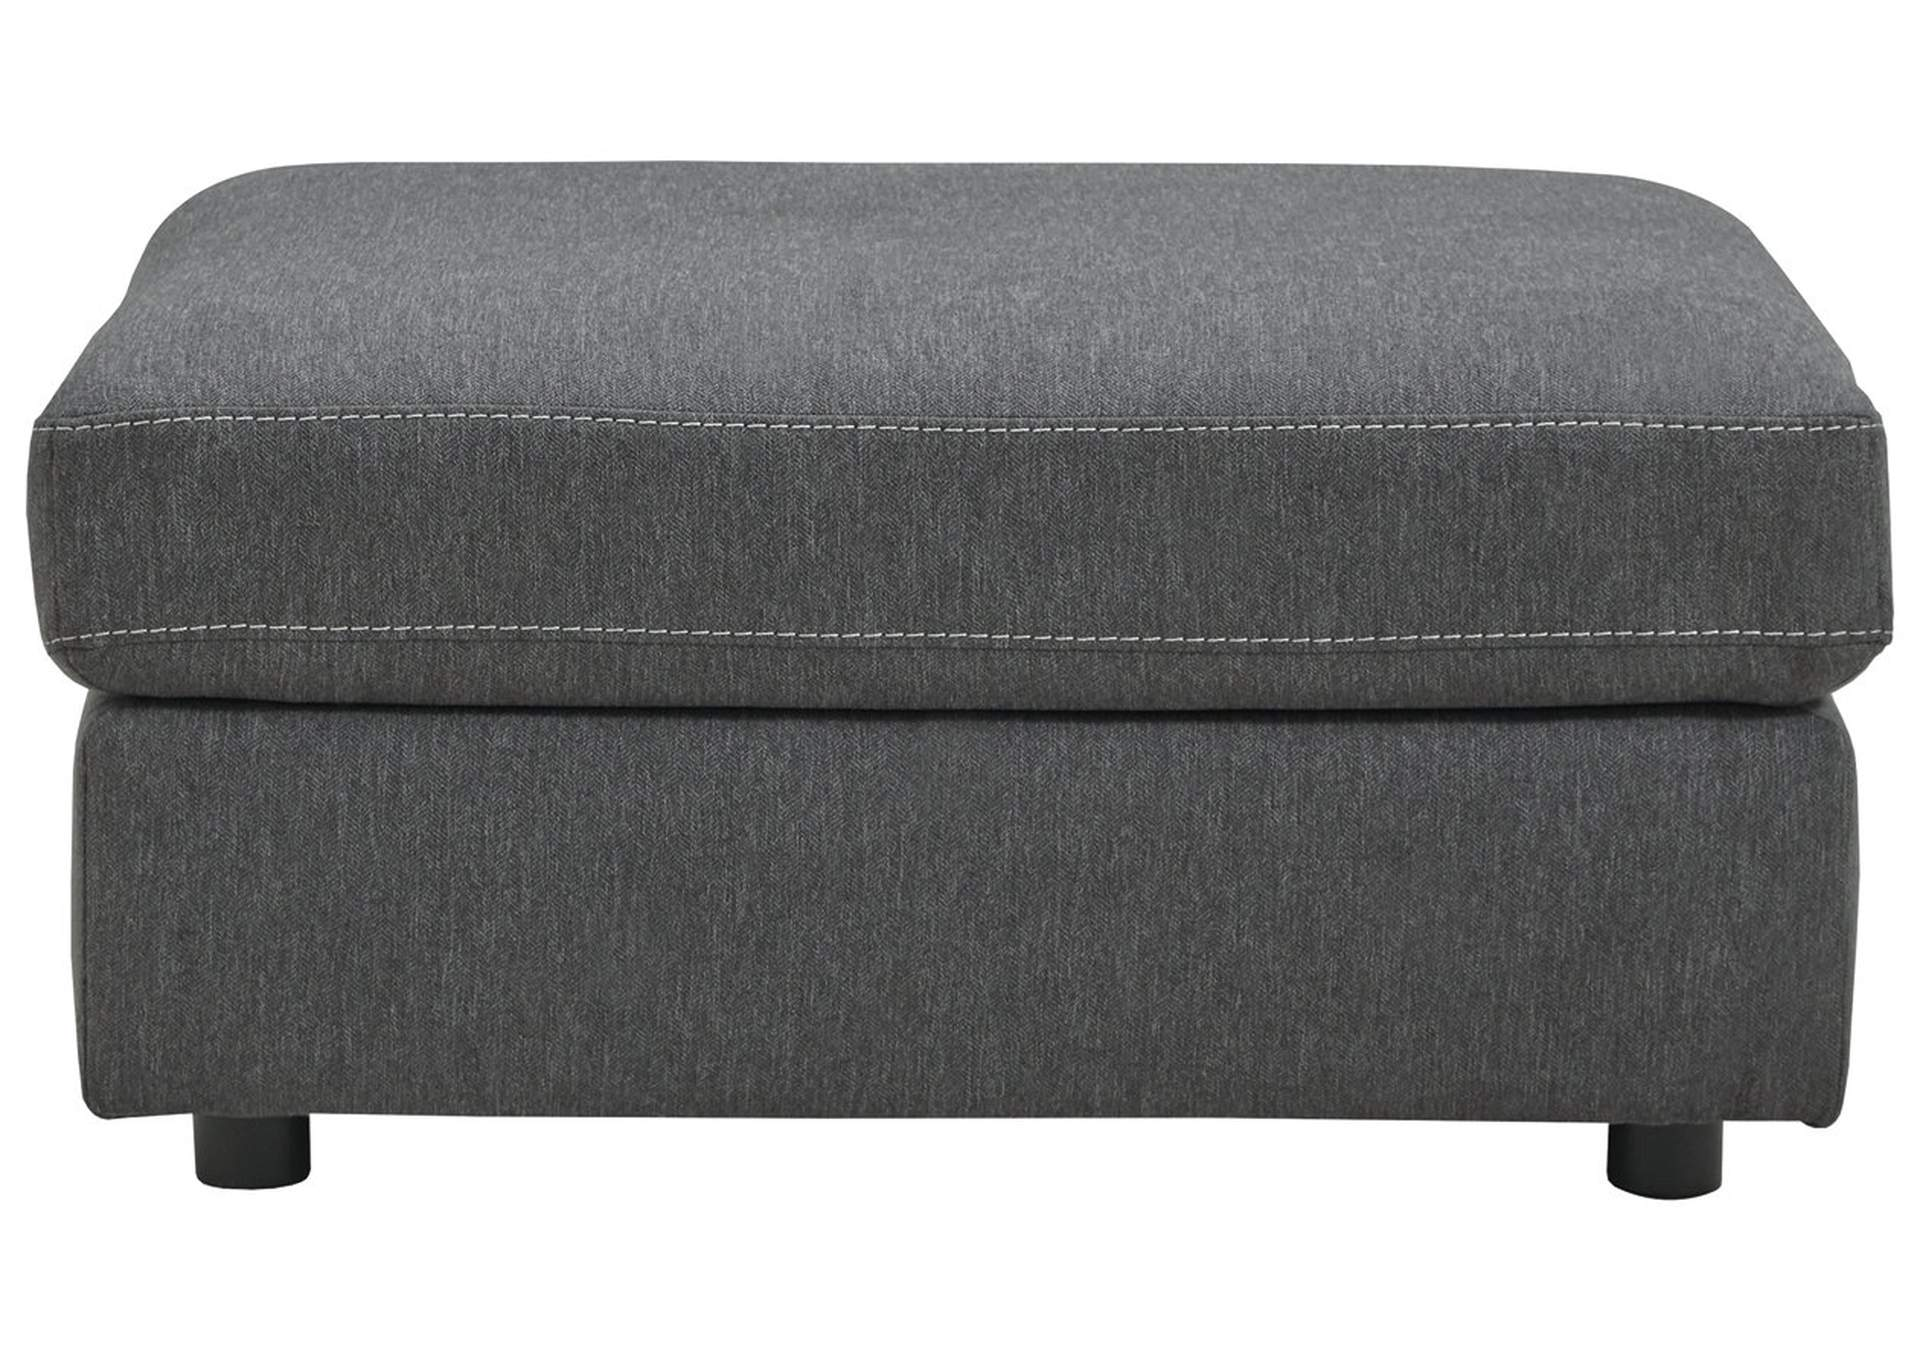 Candela Oversized Accent Ottoman,Signature Design By Ashley